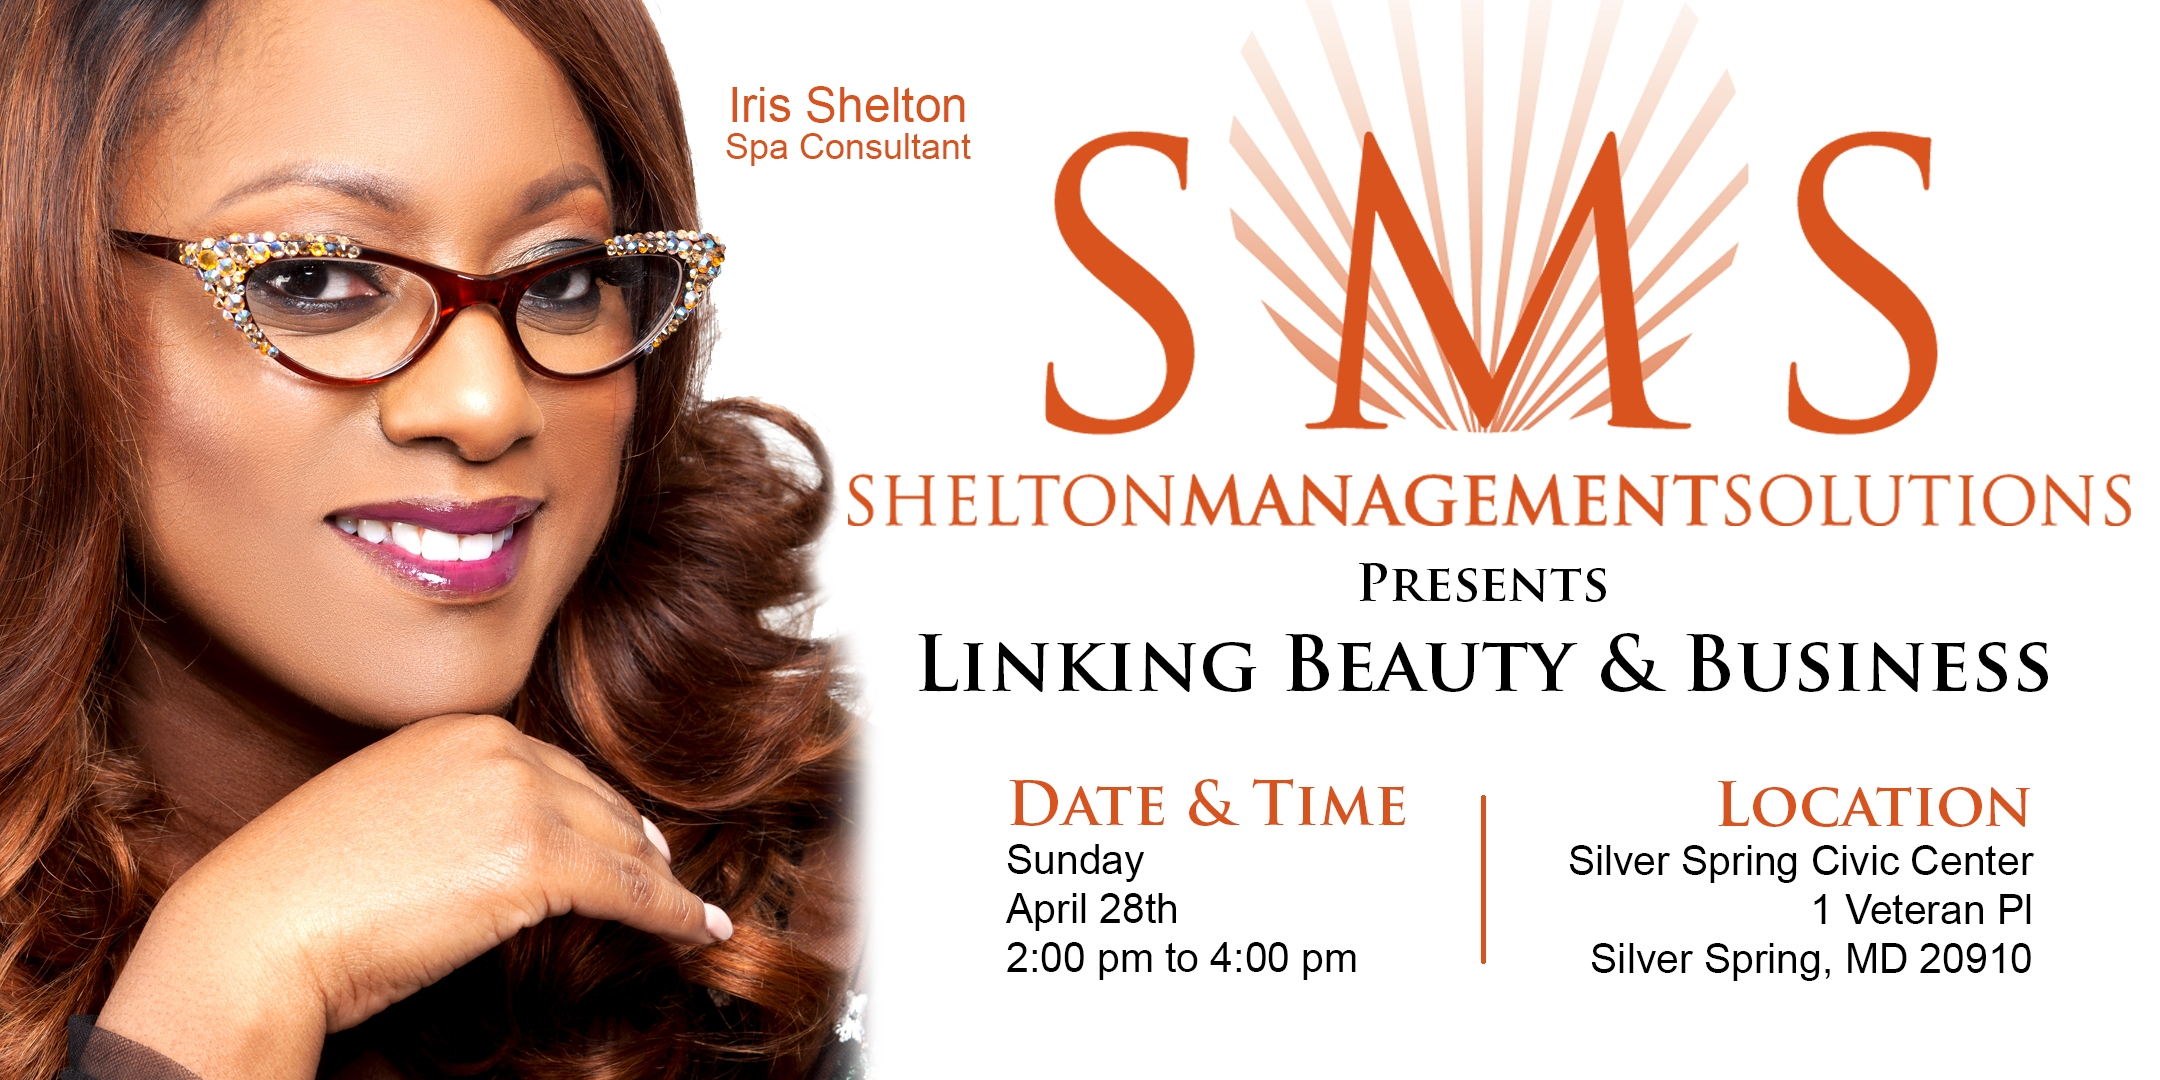 Join Iris Shelton at the Linking Beauty & Business two-hour Workshop. Business Assessment, Interactive Learning, Networking and more!